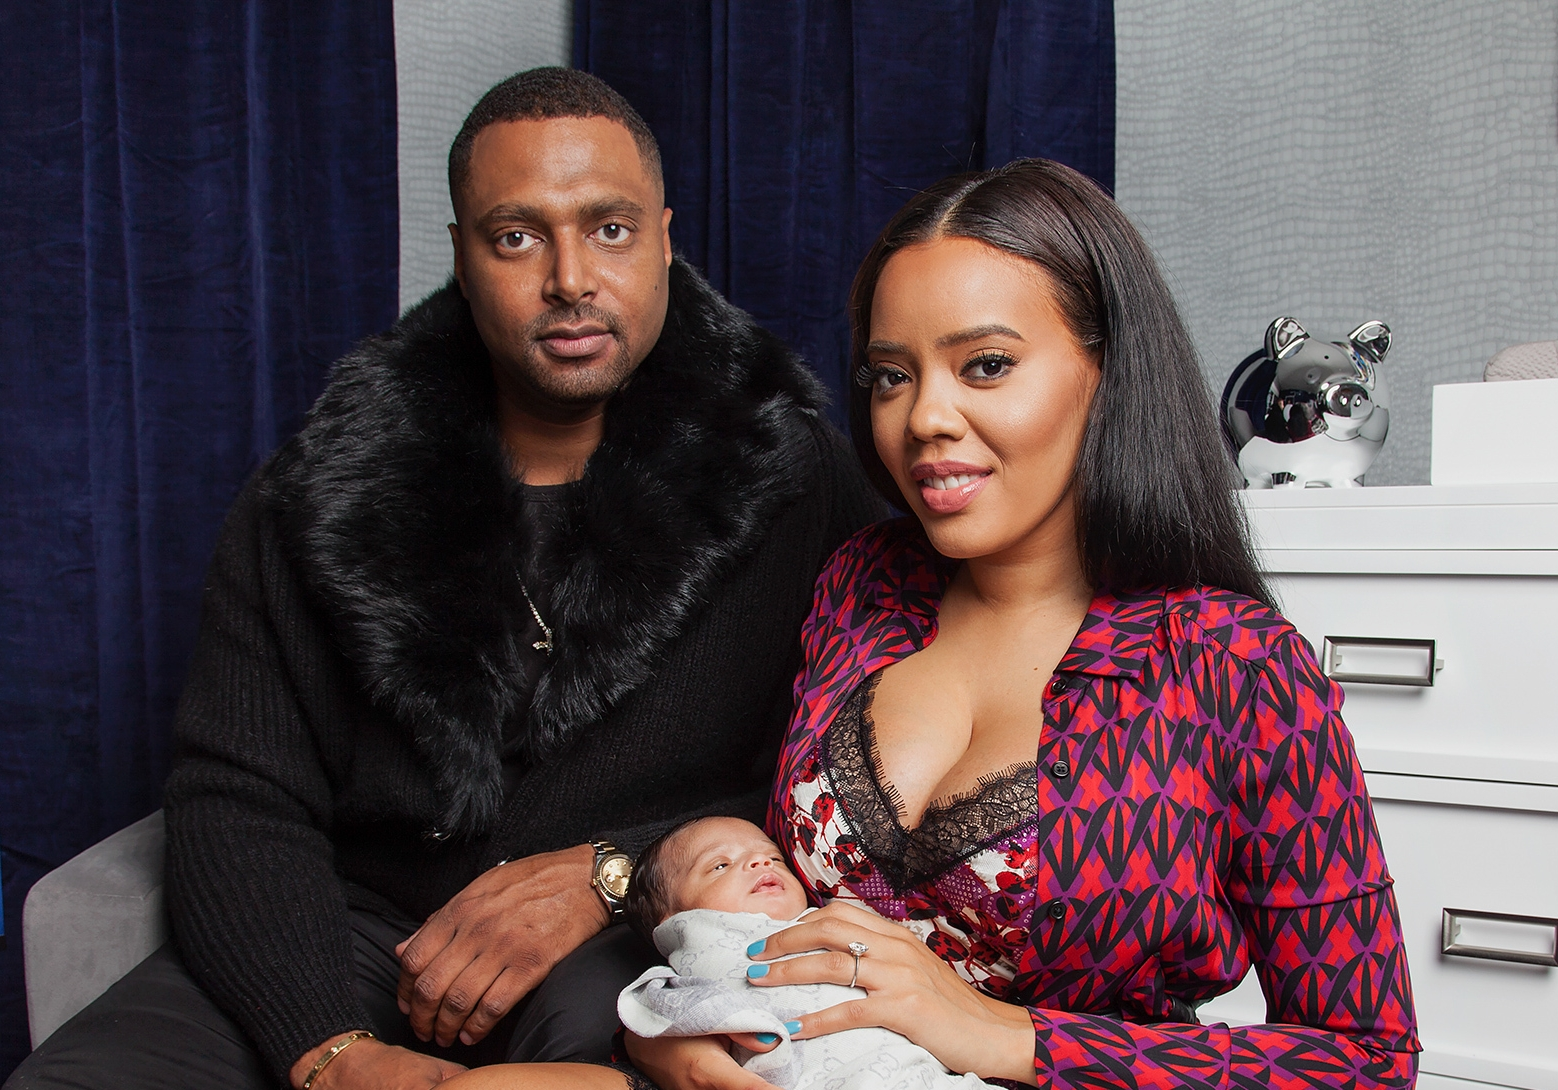 Taken by photographer Chris Veith of Angela Simmons for People Magazine